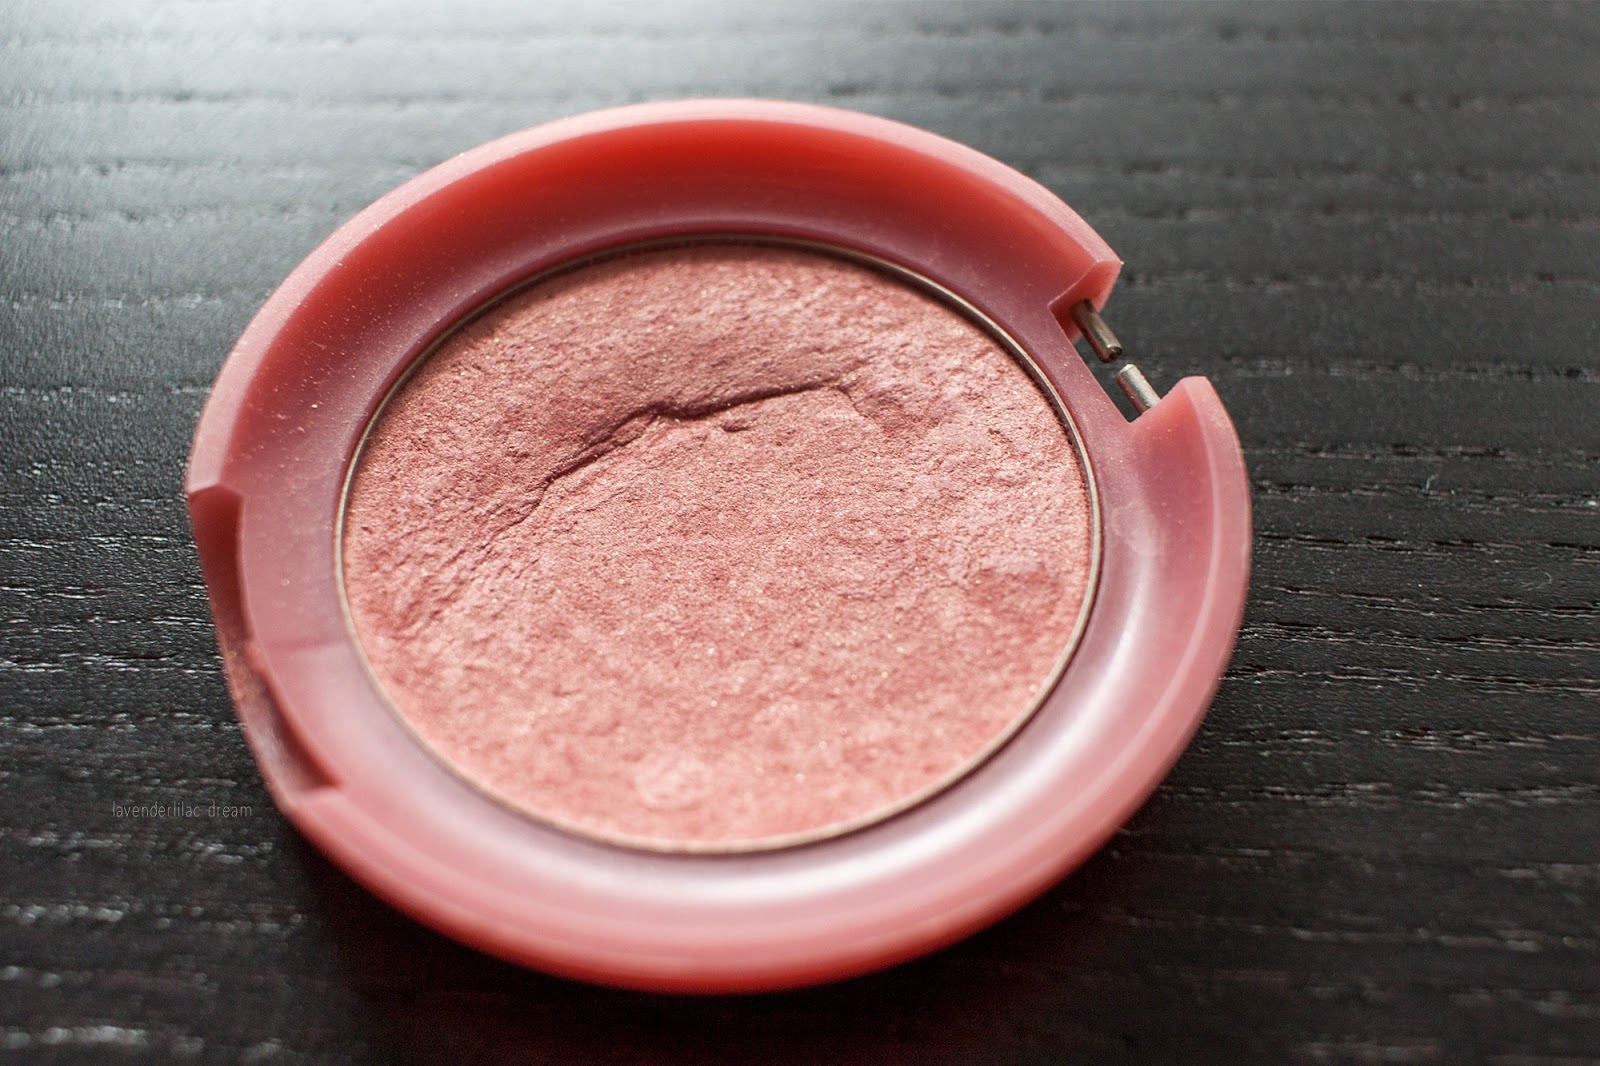 Etude House Lovely Cookie Blusher, Korean cosmetics, Project Make a Dent half way results